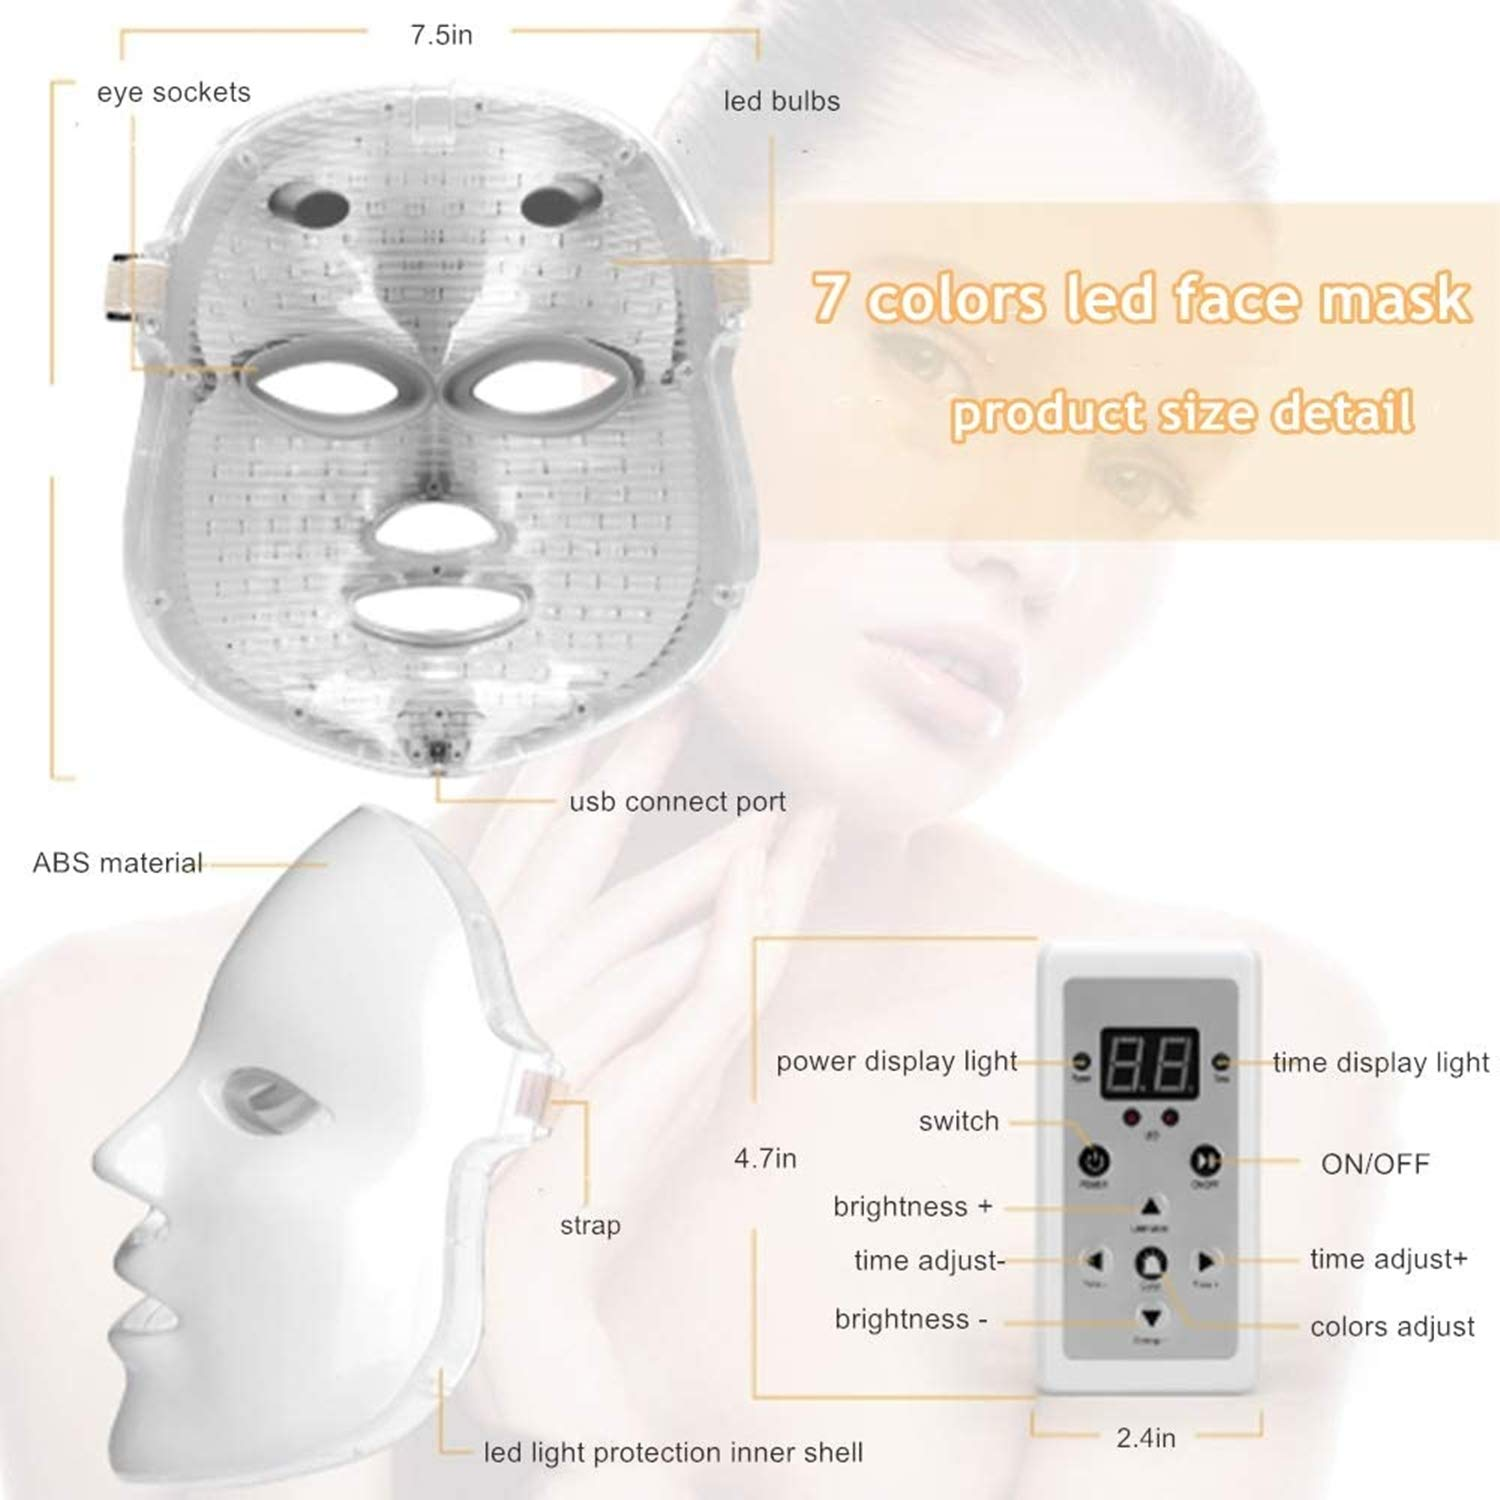 Obqo Led Face Mask Light Therapy Skin Revitalisation Led Mask Light Therapy Mask Beauty